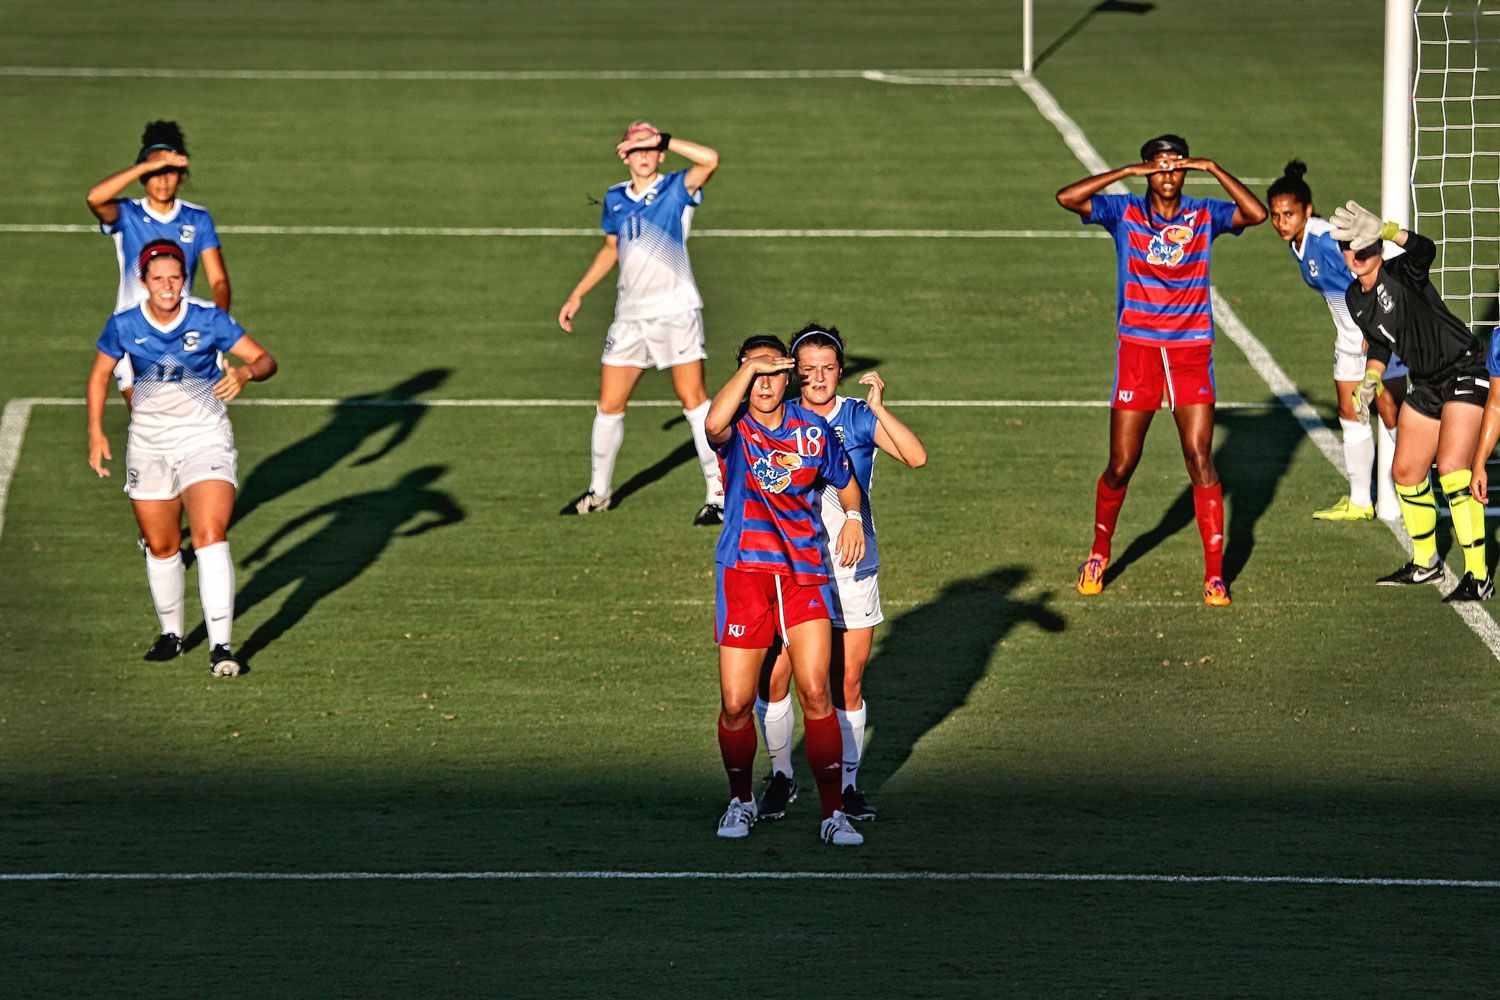 Sun in the eyes of KU Soccer Players